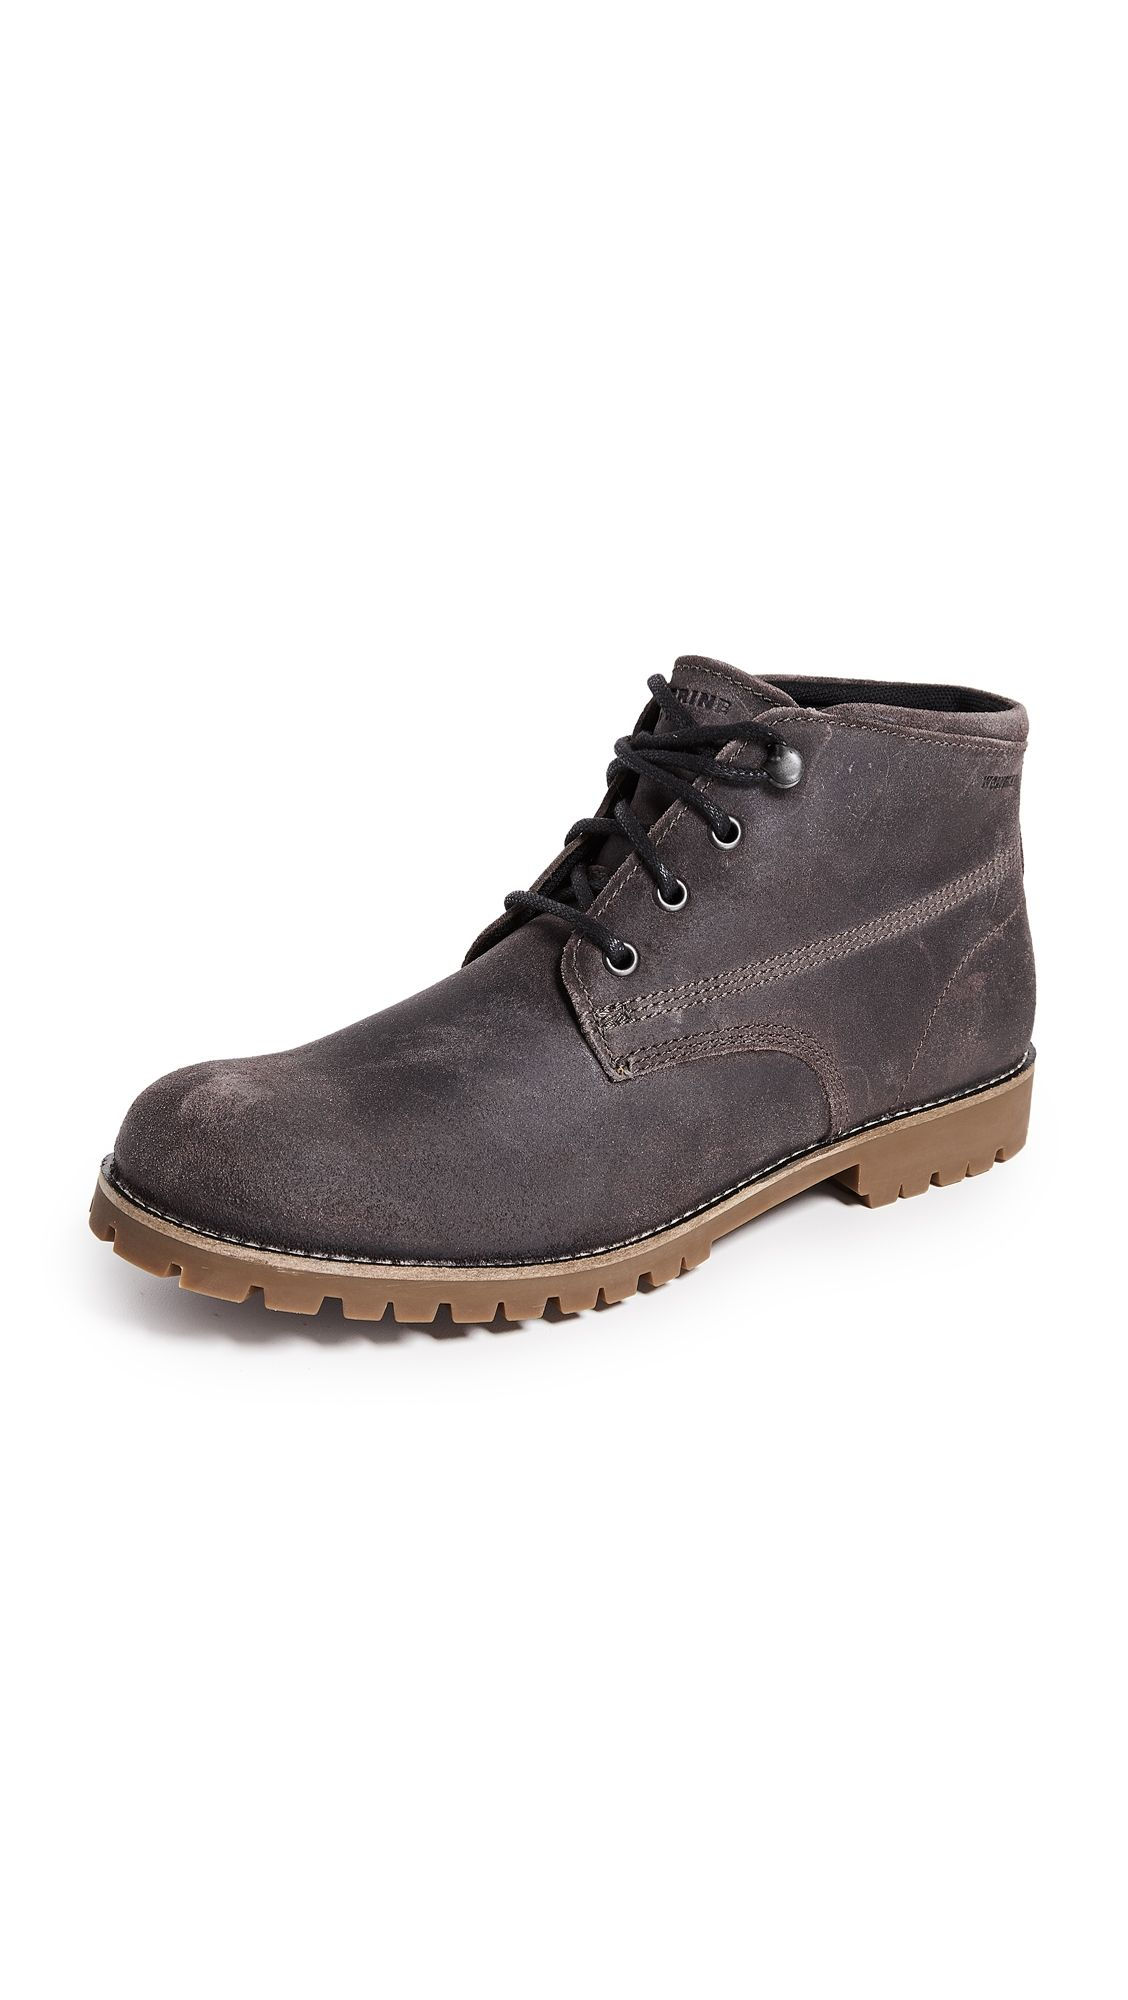 d4189850110 WOLVERINE 1883 CORT WATERPROOF CHUKKA BOOTS. #wolverine #shoes ...